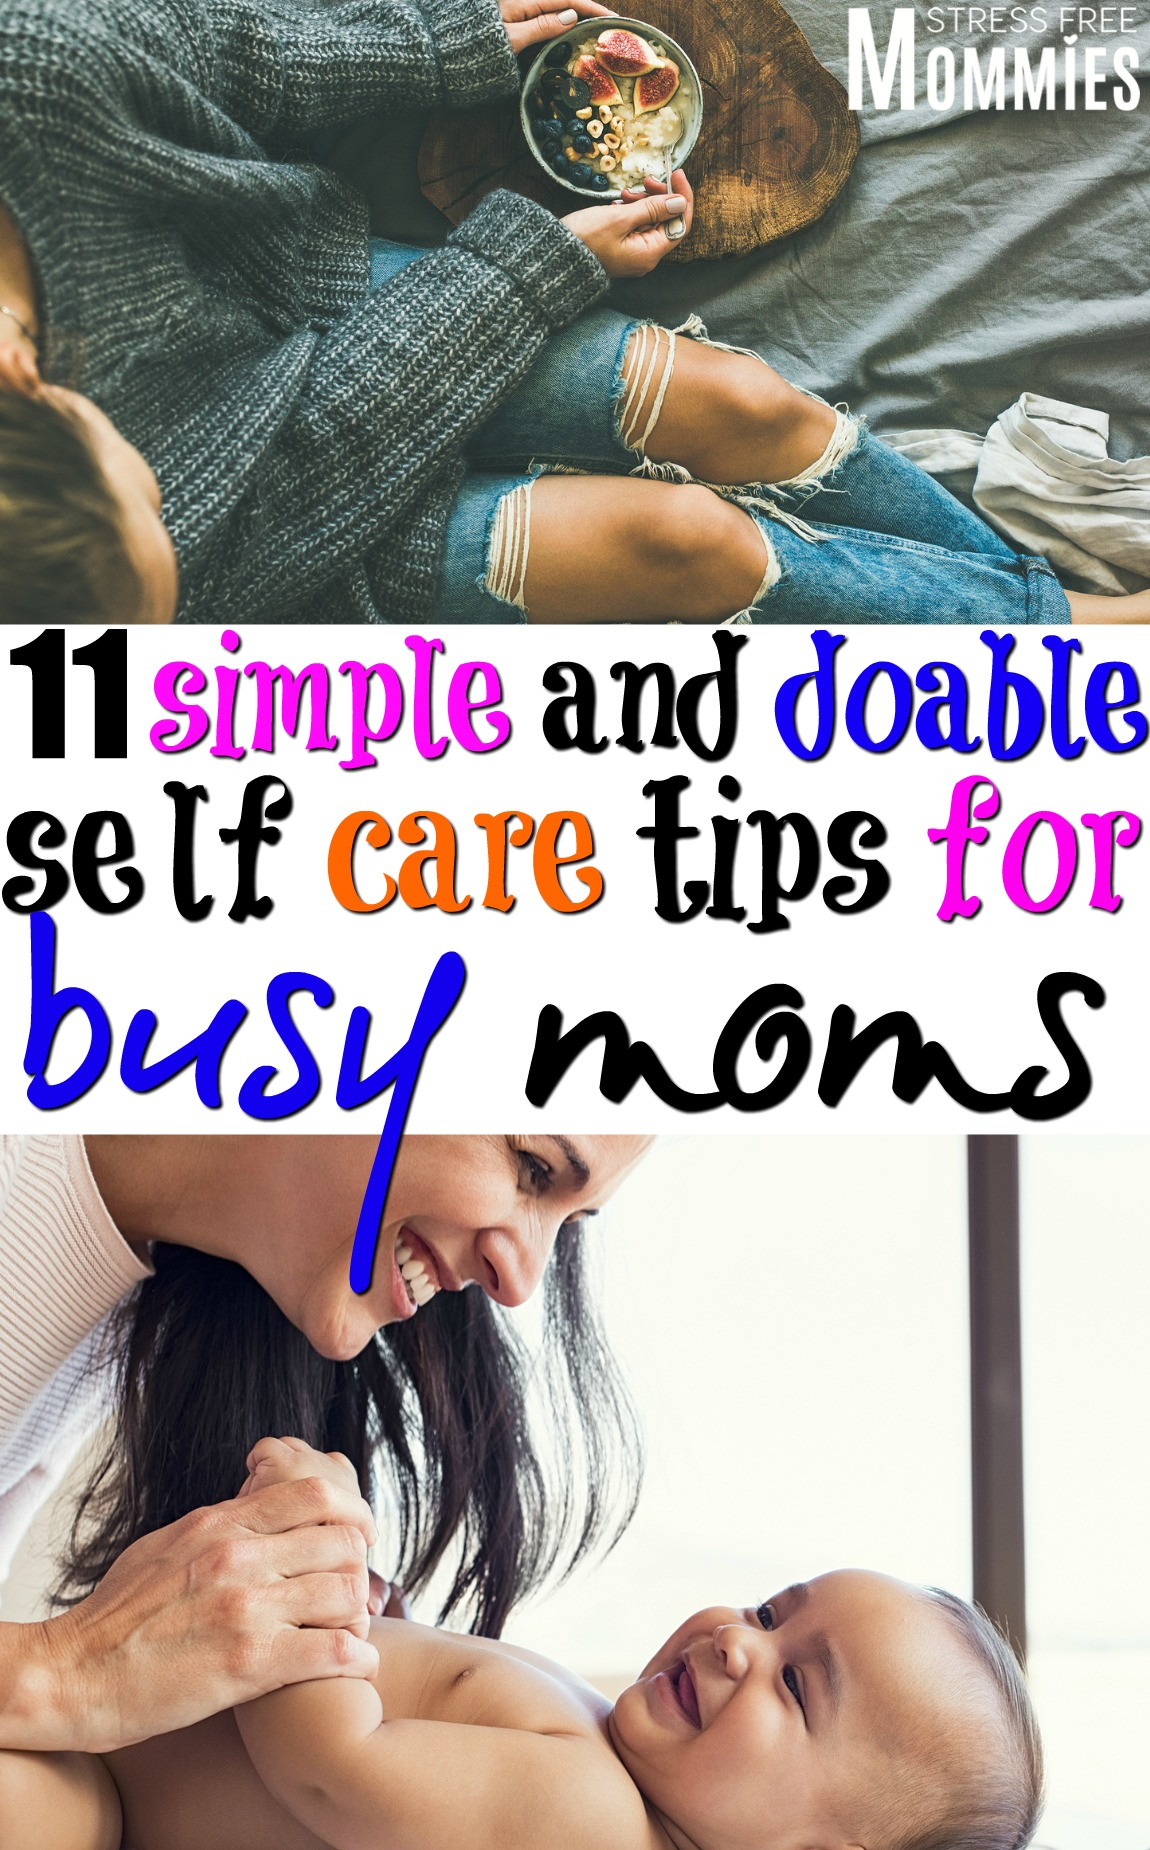 Learn about the easy and doable ways moms can care for themselves and why it's important. Simple self care tips for busy moms. #momtips #selfcare